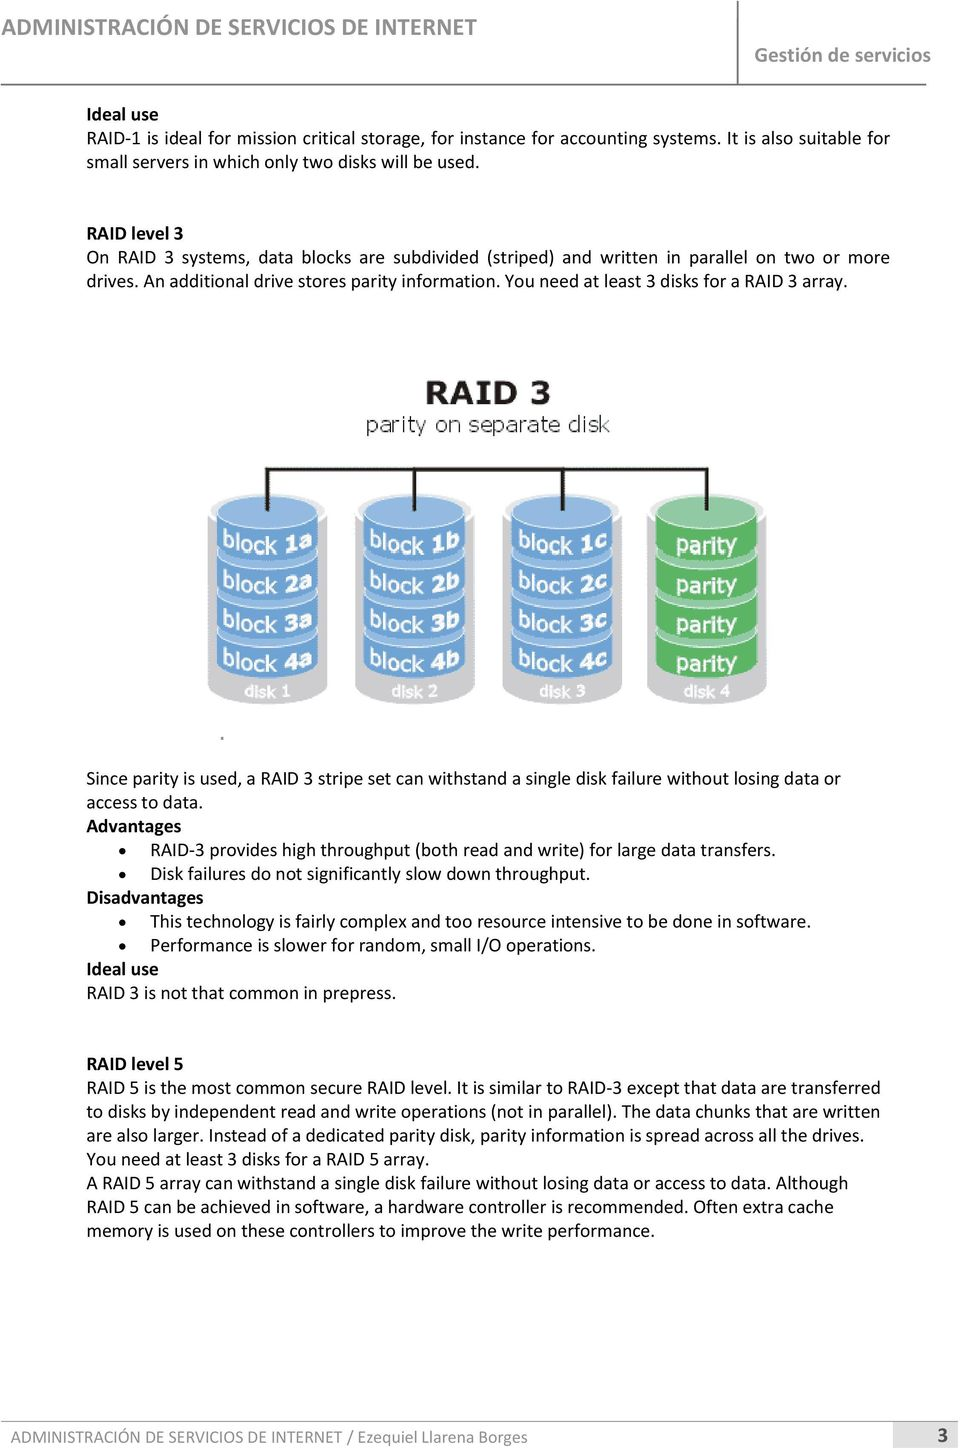 You need at least 3 disks for a RAID 3 array. Since parity is used, a RAID 3 stripe set can withstand a single disk failure without losing data or access to data.